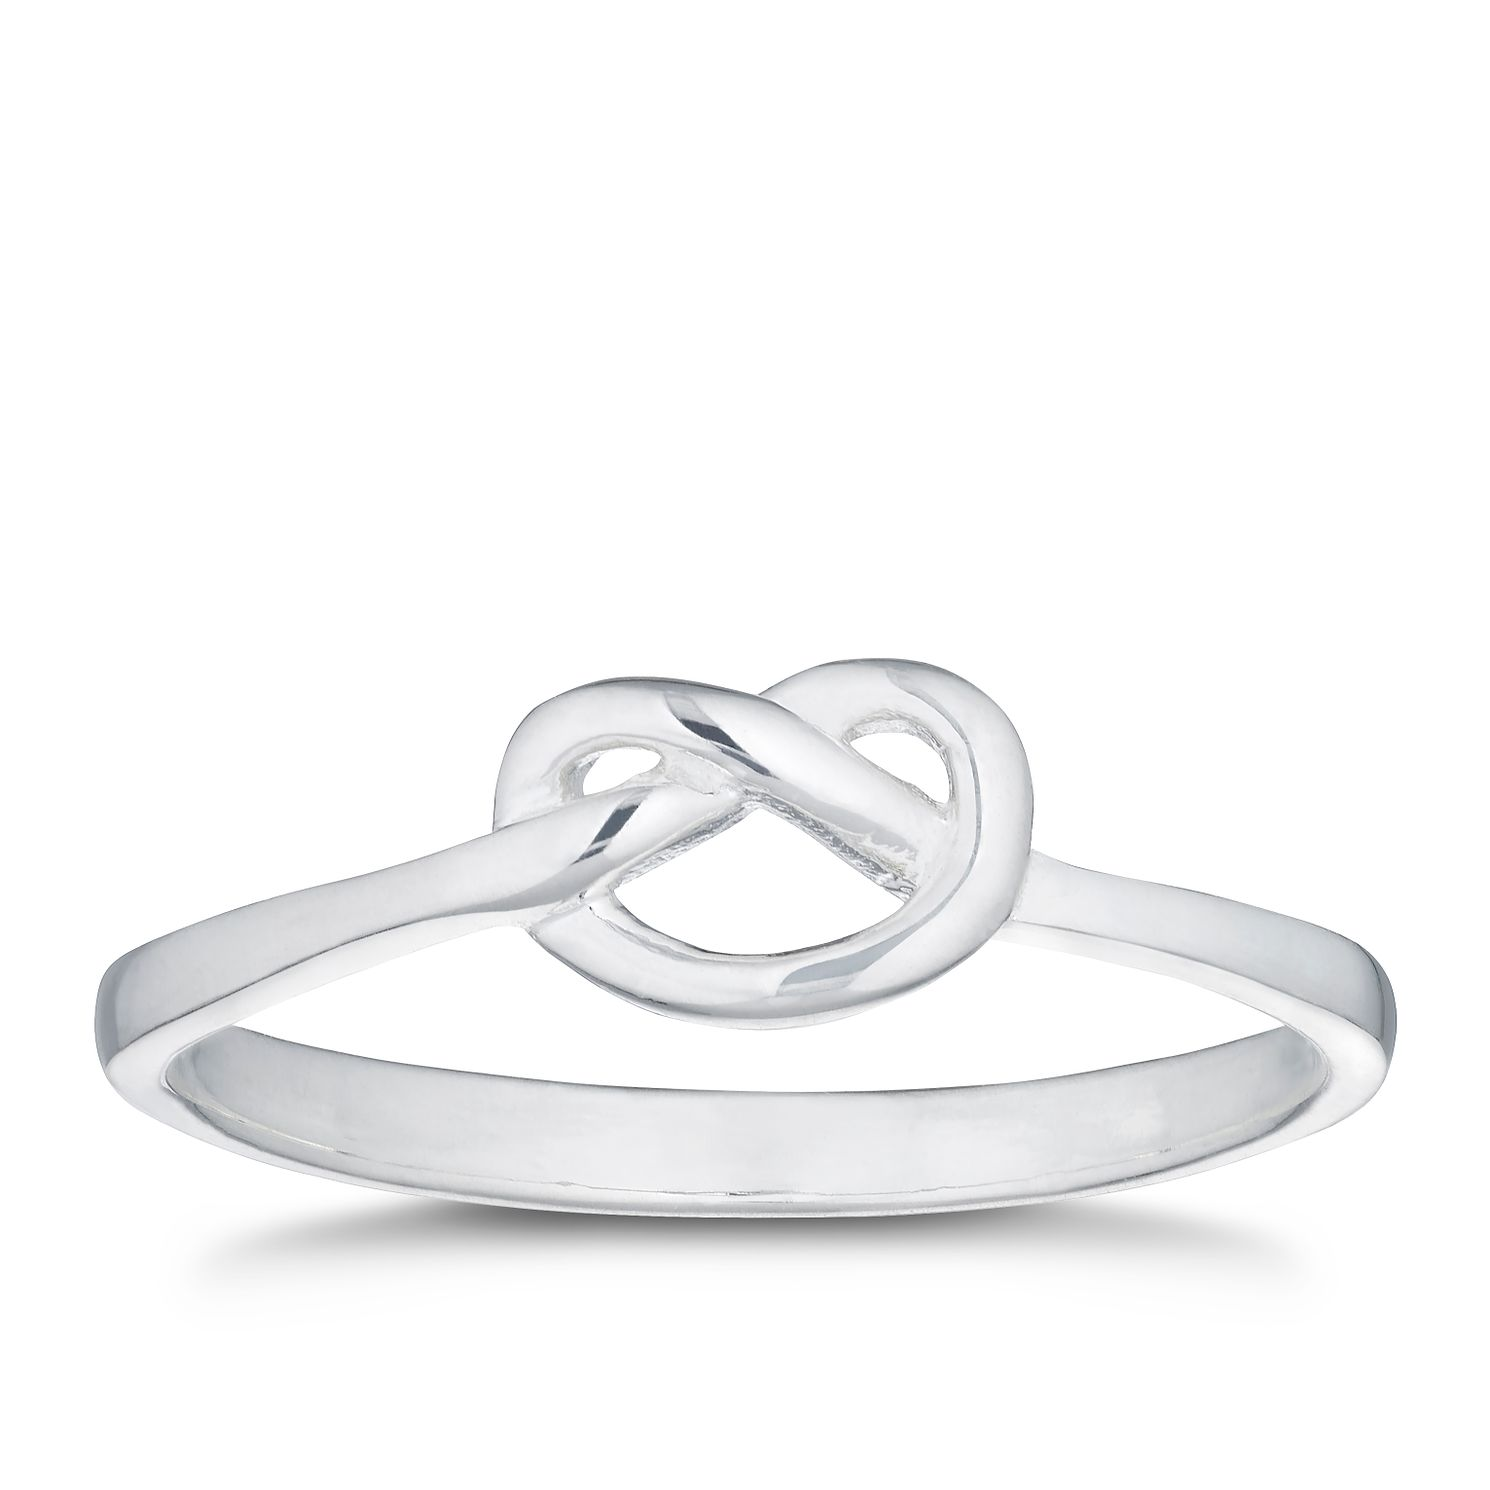 Silver Knot Ring - Size L - Product number 3047547